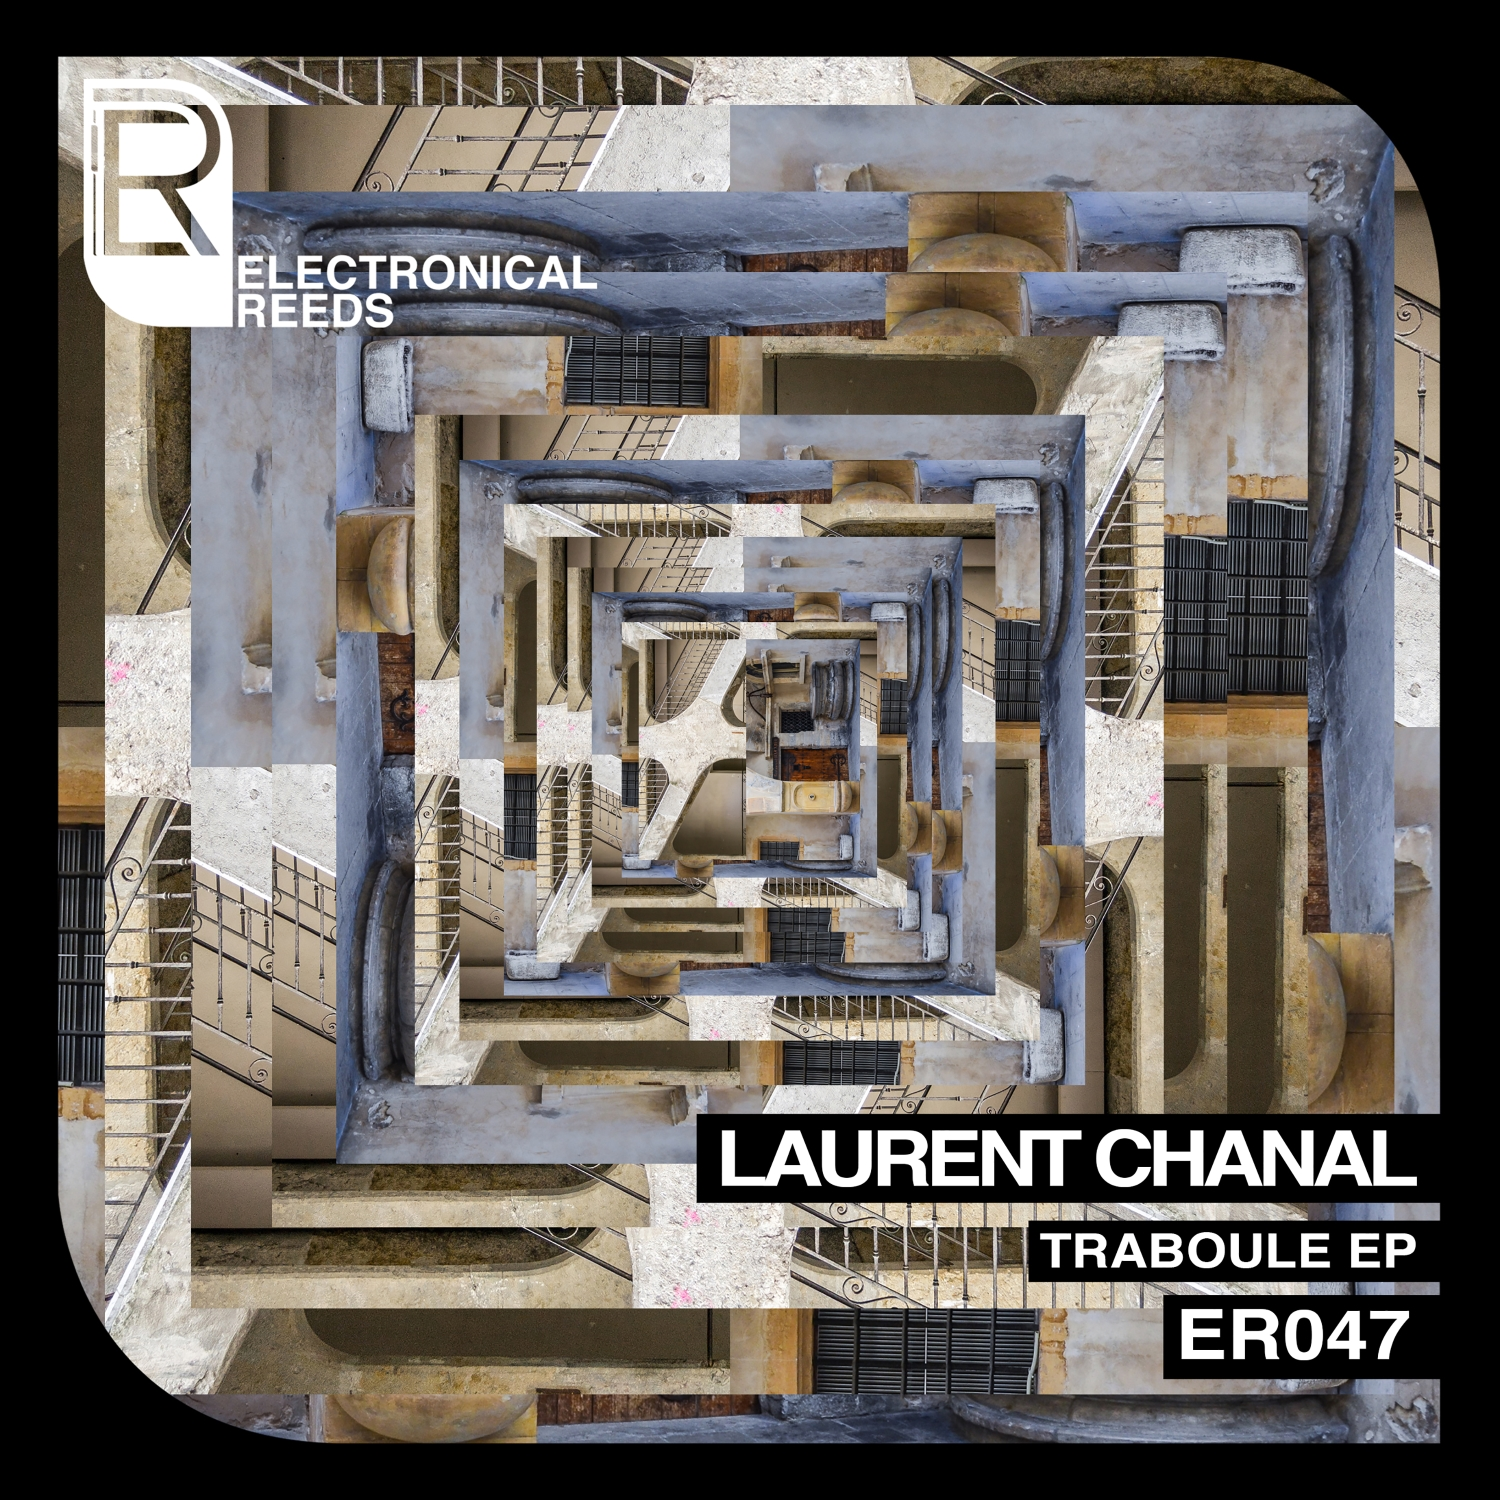 ER047 - Laurent Chanal - Traboule EP - Electronical Reeds